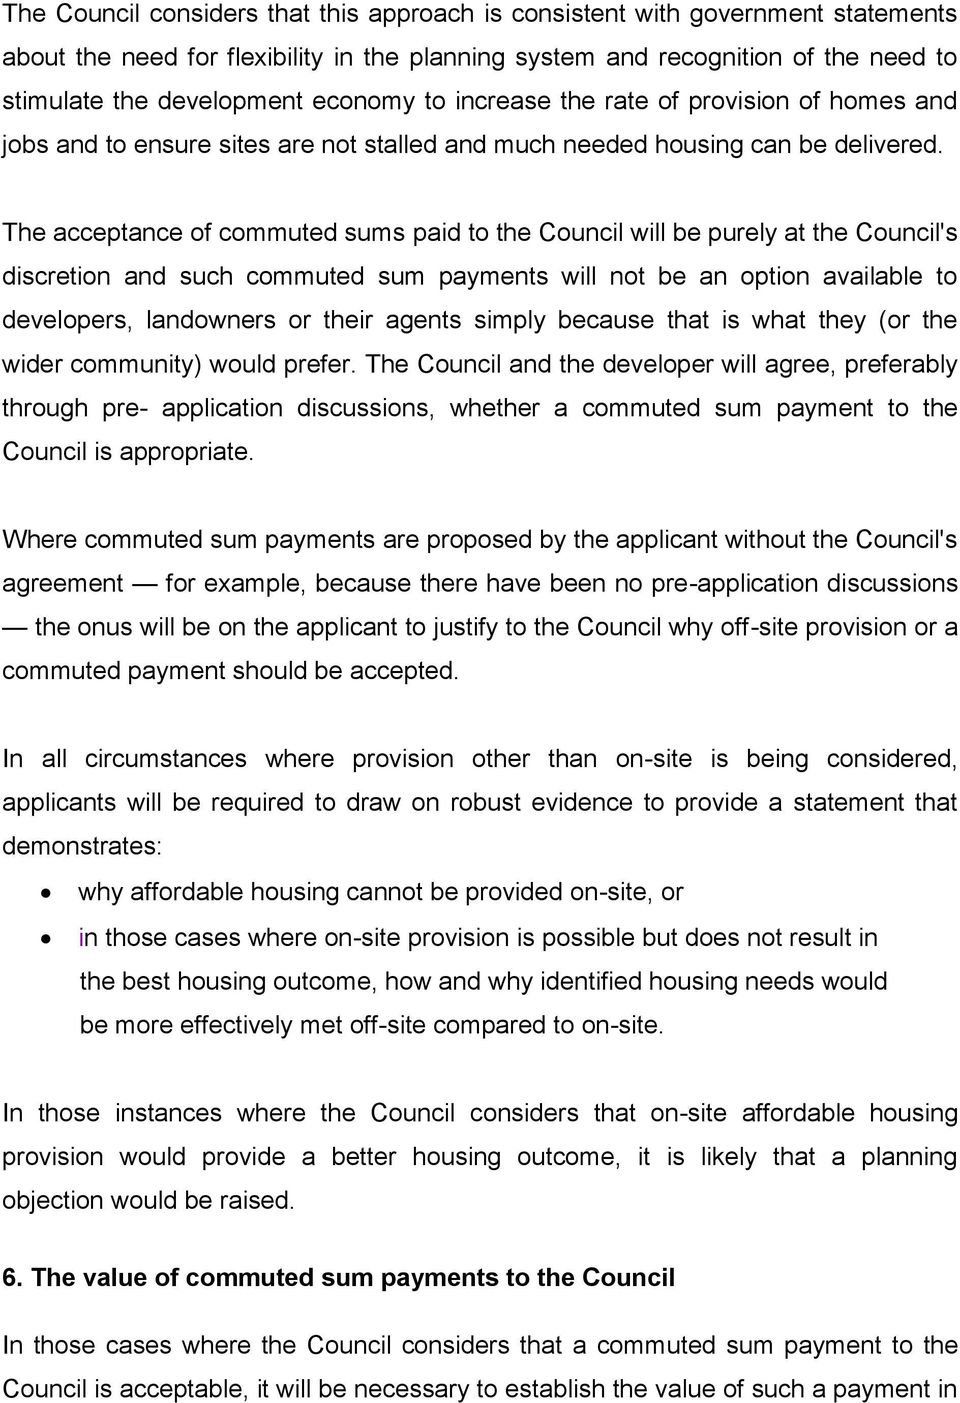 The acceptance of commuted sums paid to the Council will be purely at the Council's discretion and such commuted sum payments will not be an option available to developers, landowners or their agents